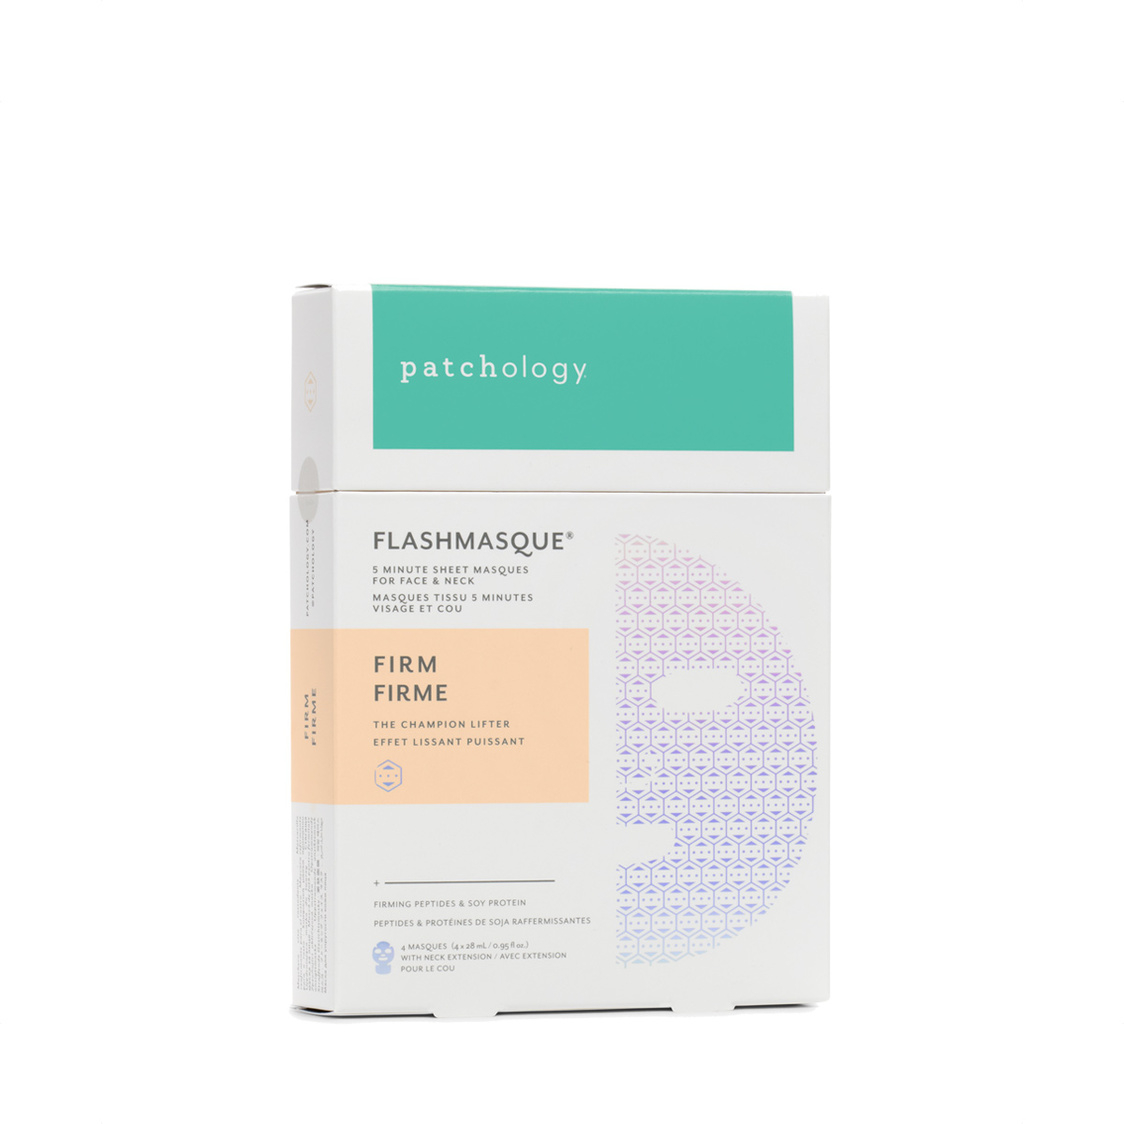 Flashmasque Firm - 4-Pack